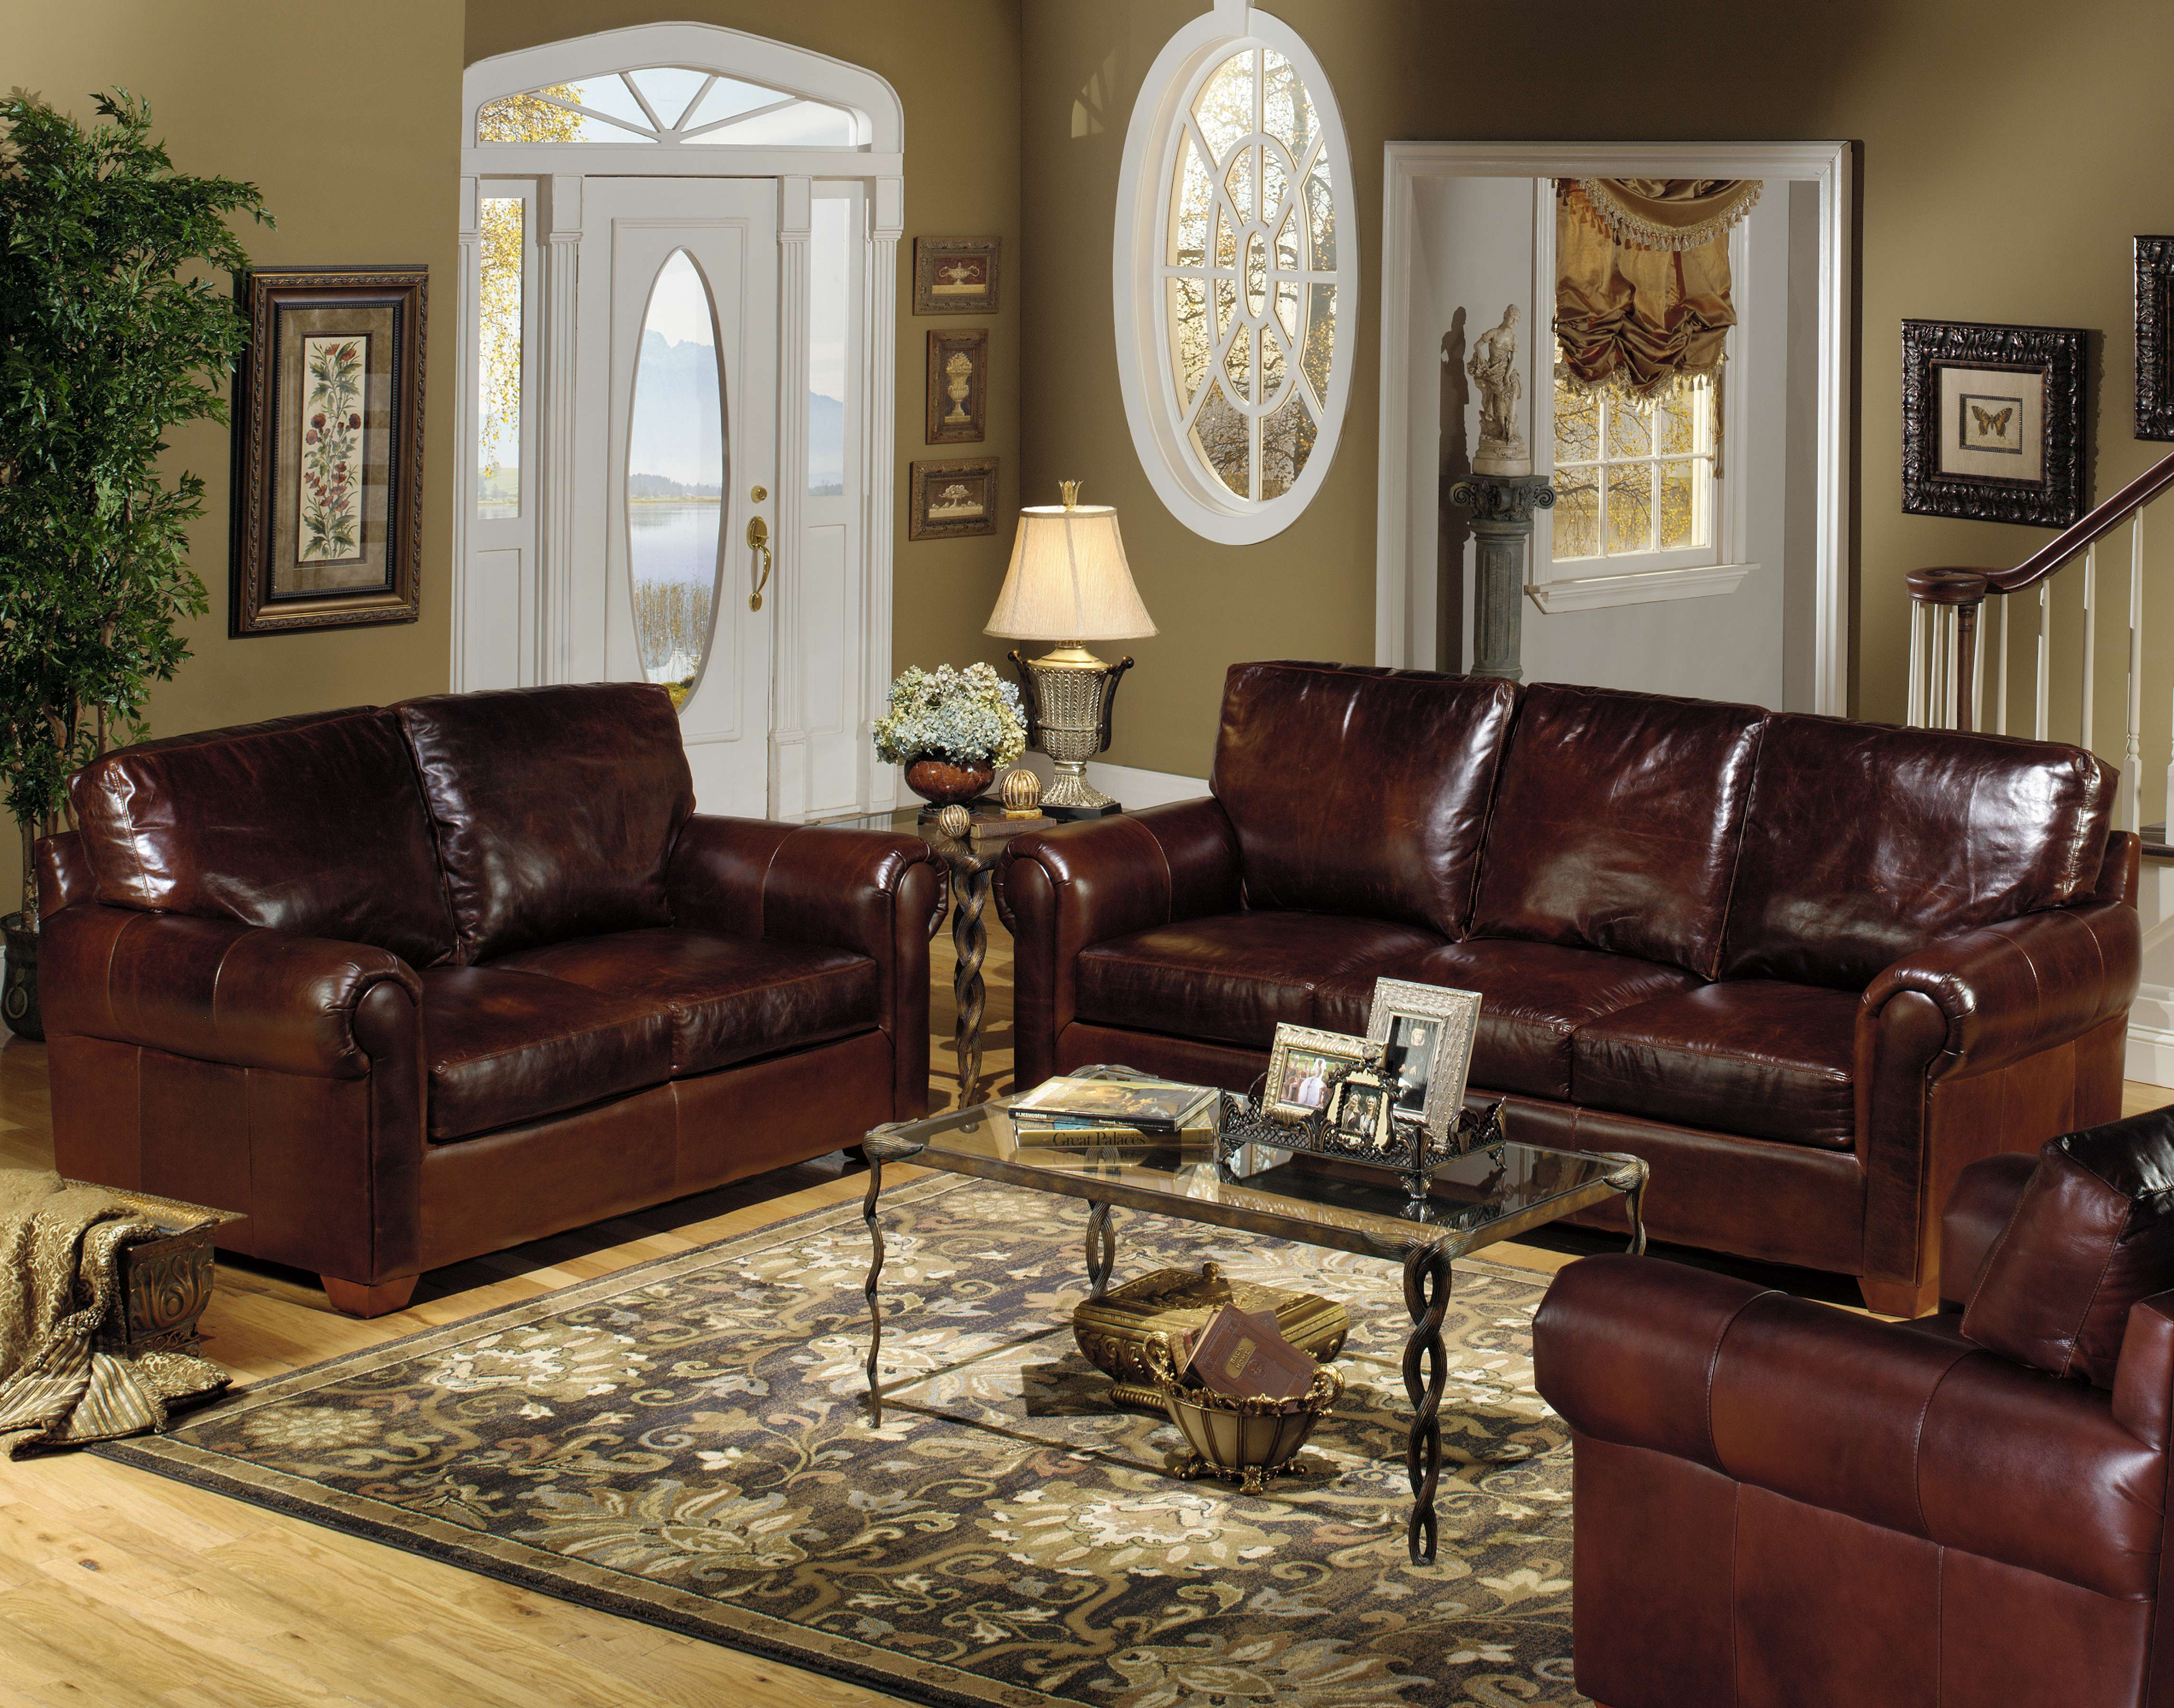 Western Living Room Furniture Newsgr pertaining to 14 Clever Tricks of How to Improve Western Living Room Sets